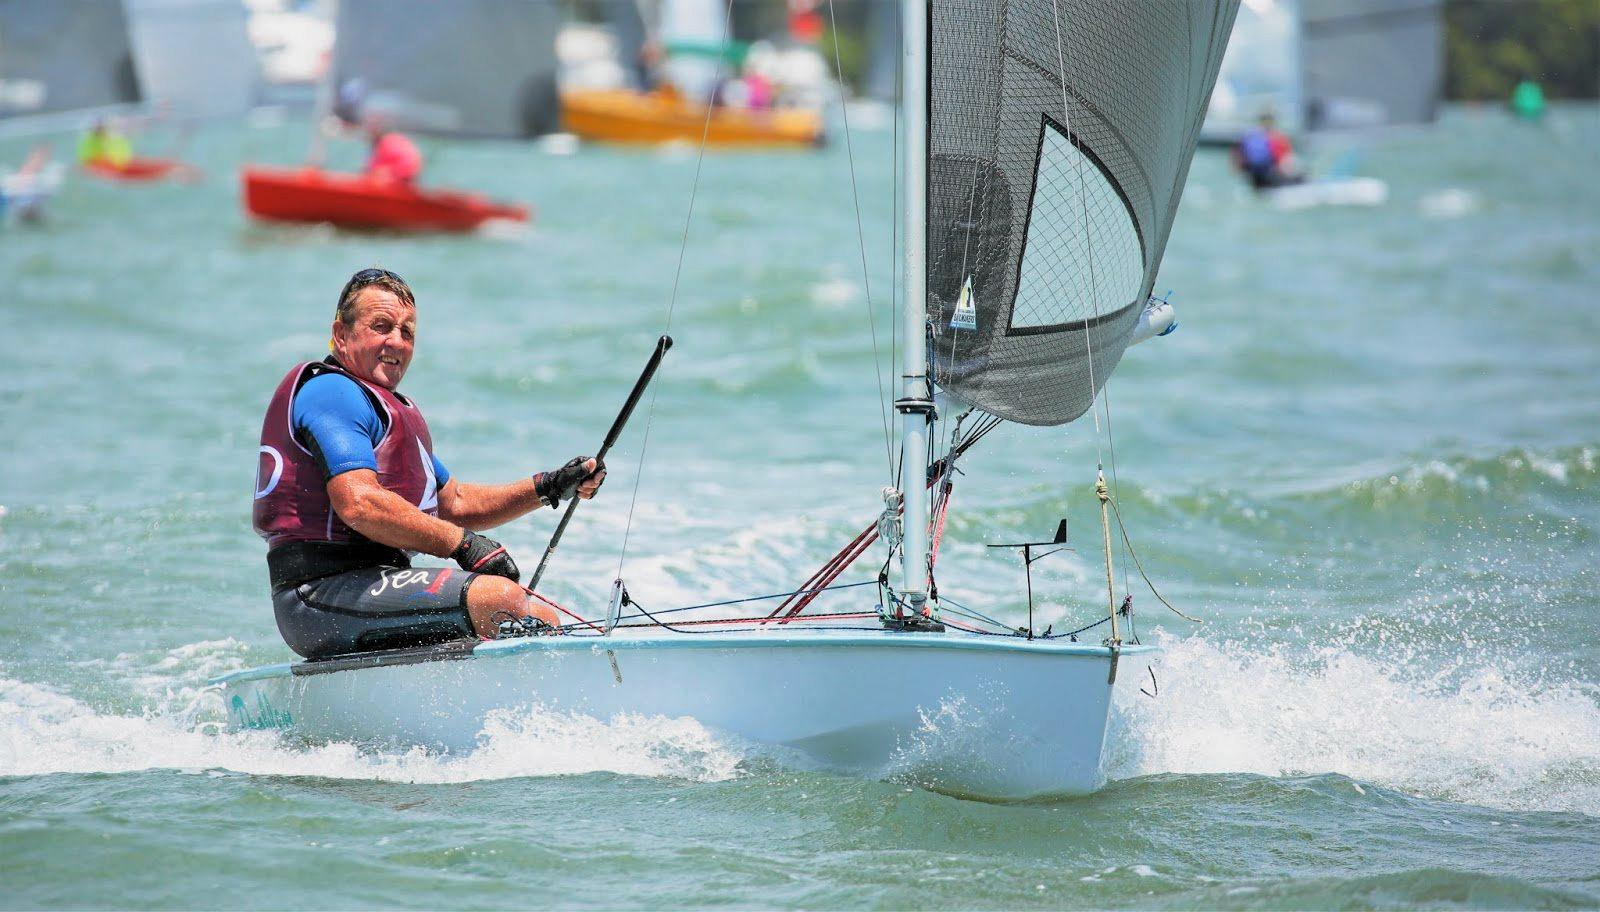 PLAIN SAILING: Ray Hobbs said the winds picked up in the last two days.